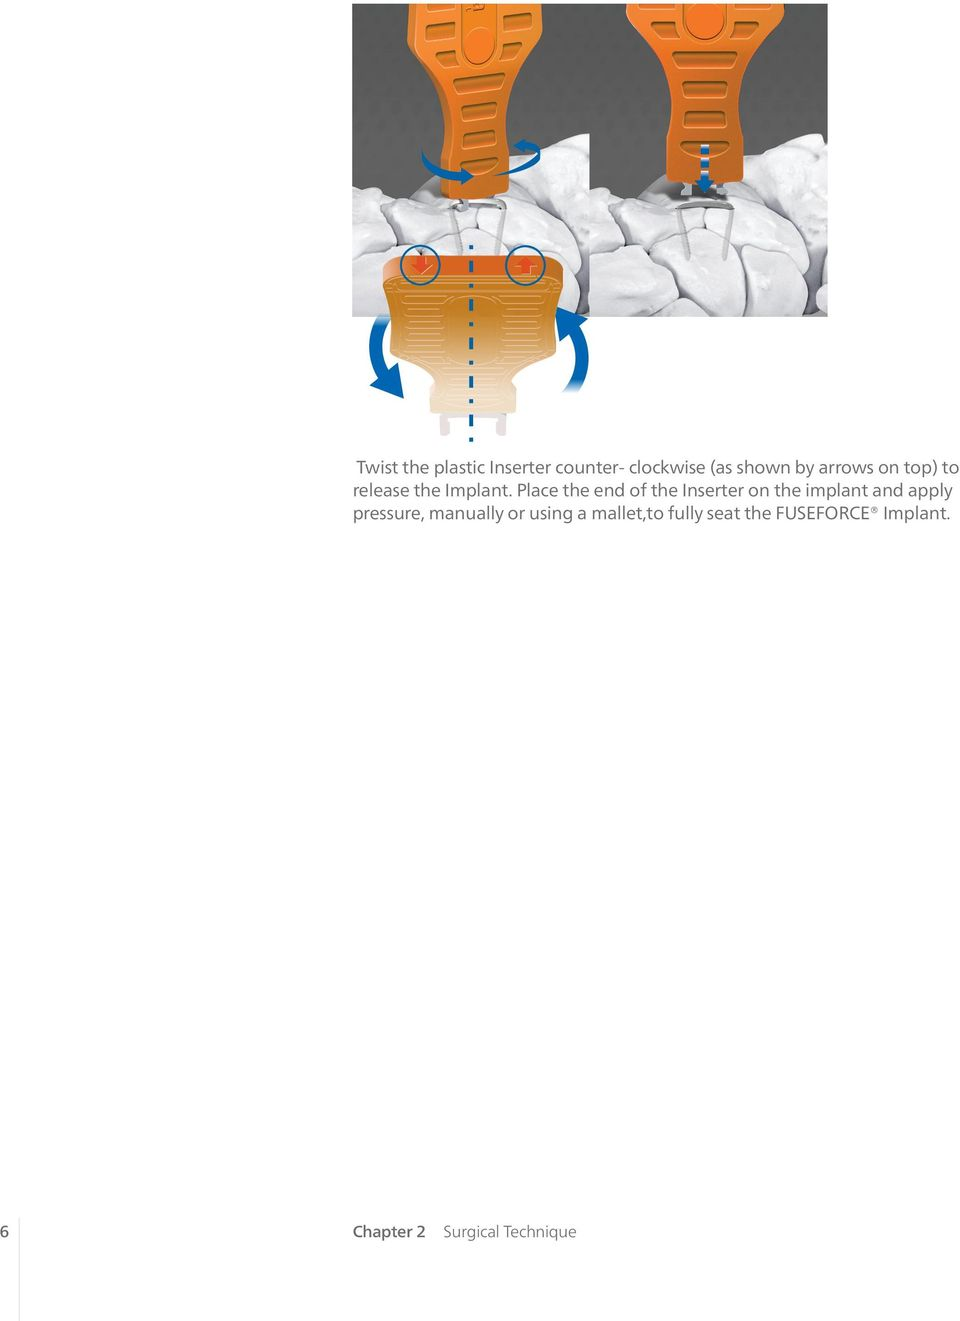 Place the end of the Inserter on the implant and apply pressure,